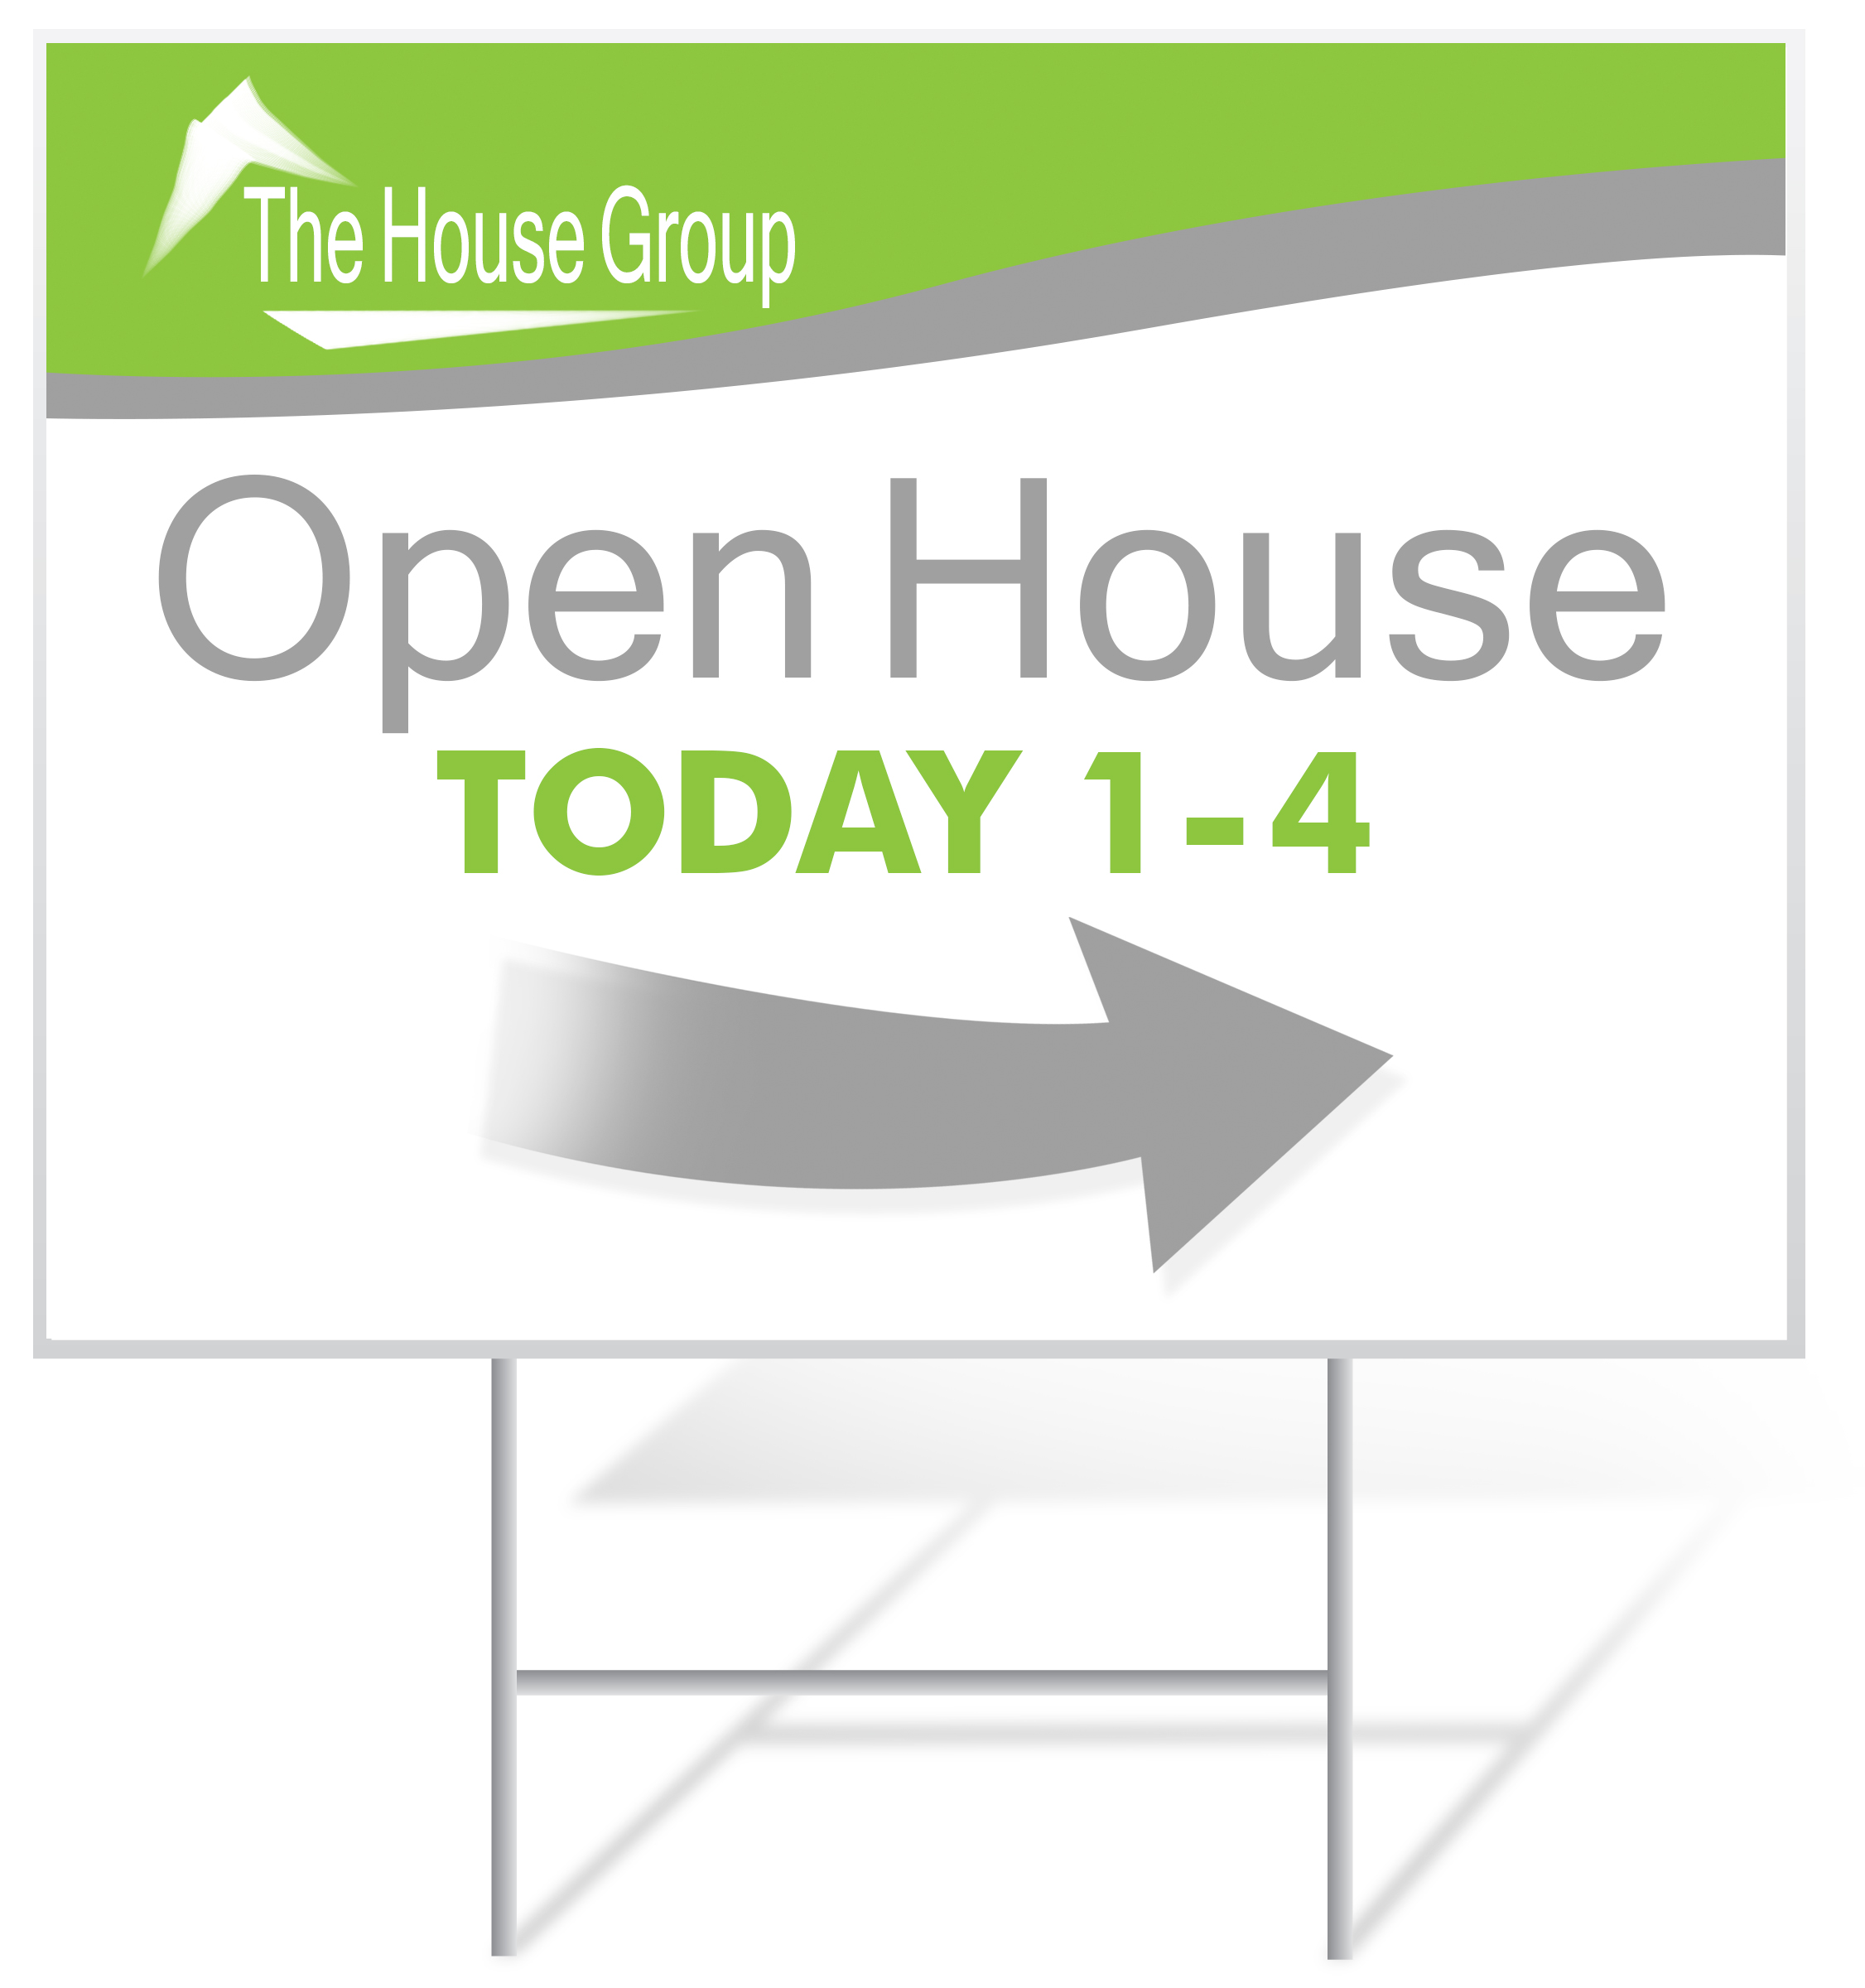 Open House Lawn Sign Example | LawnSigns.com